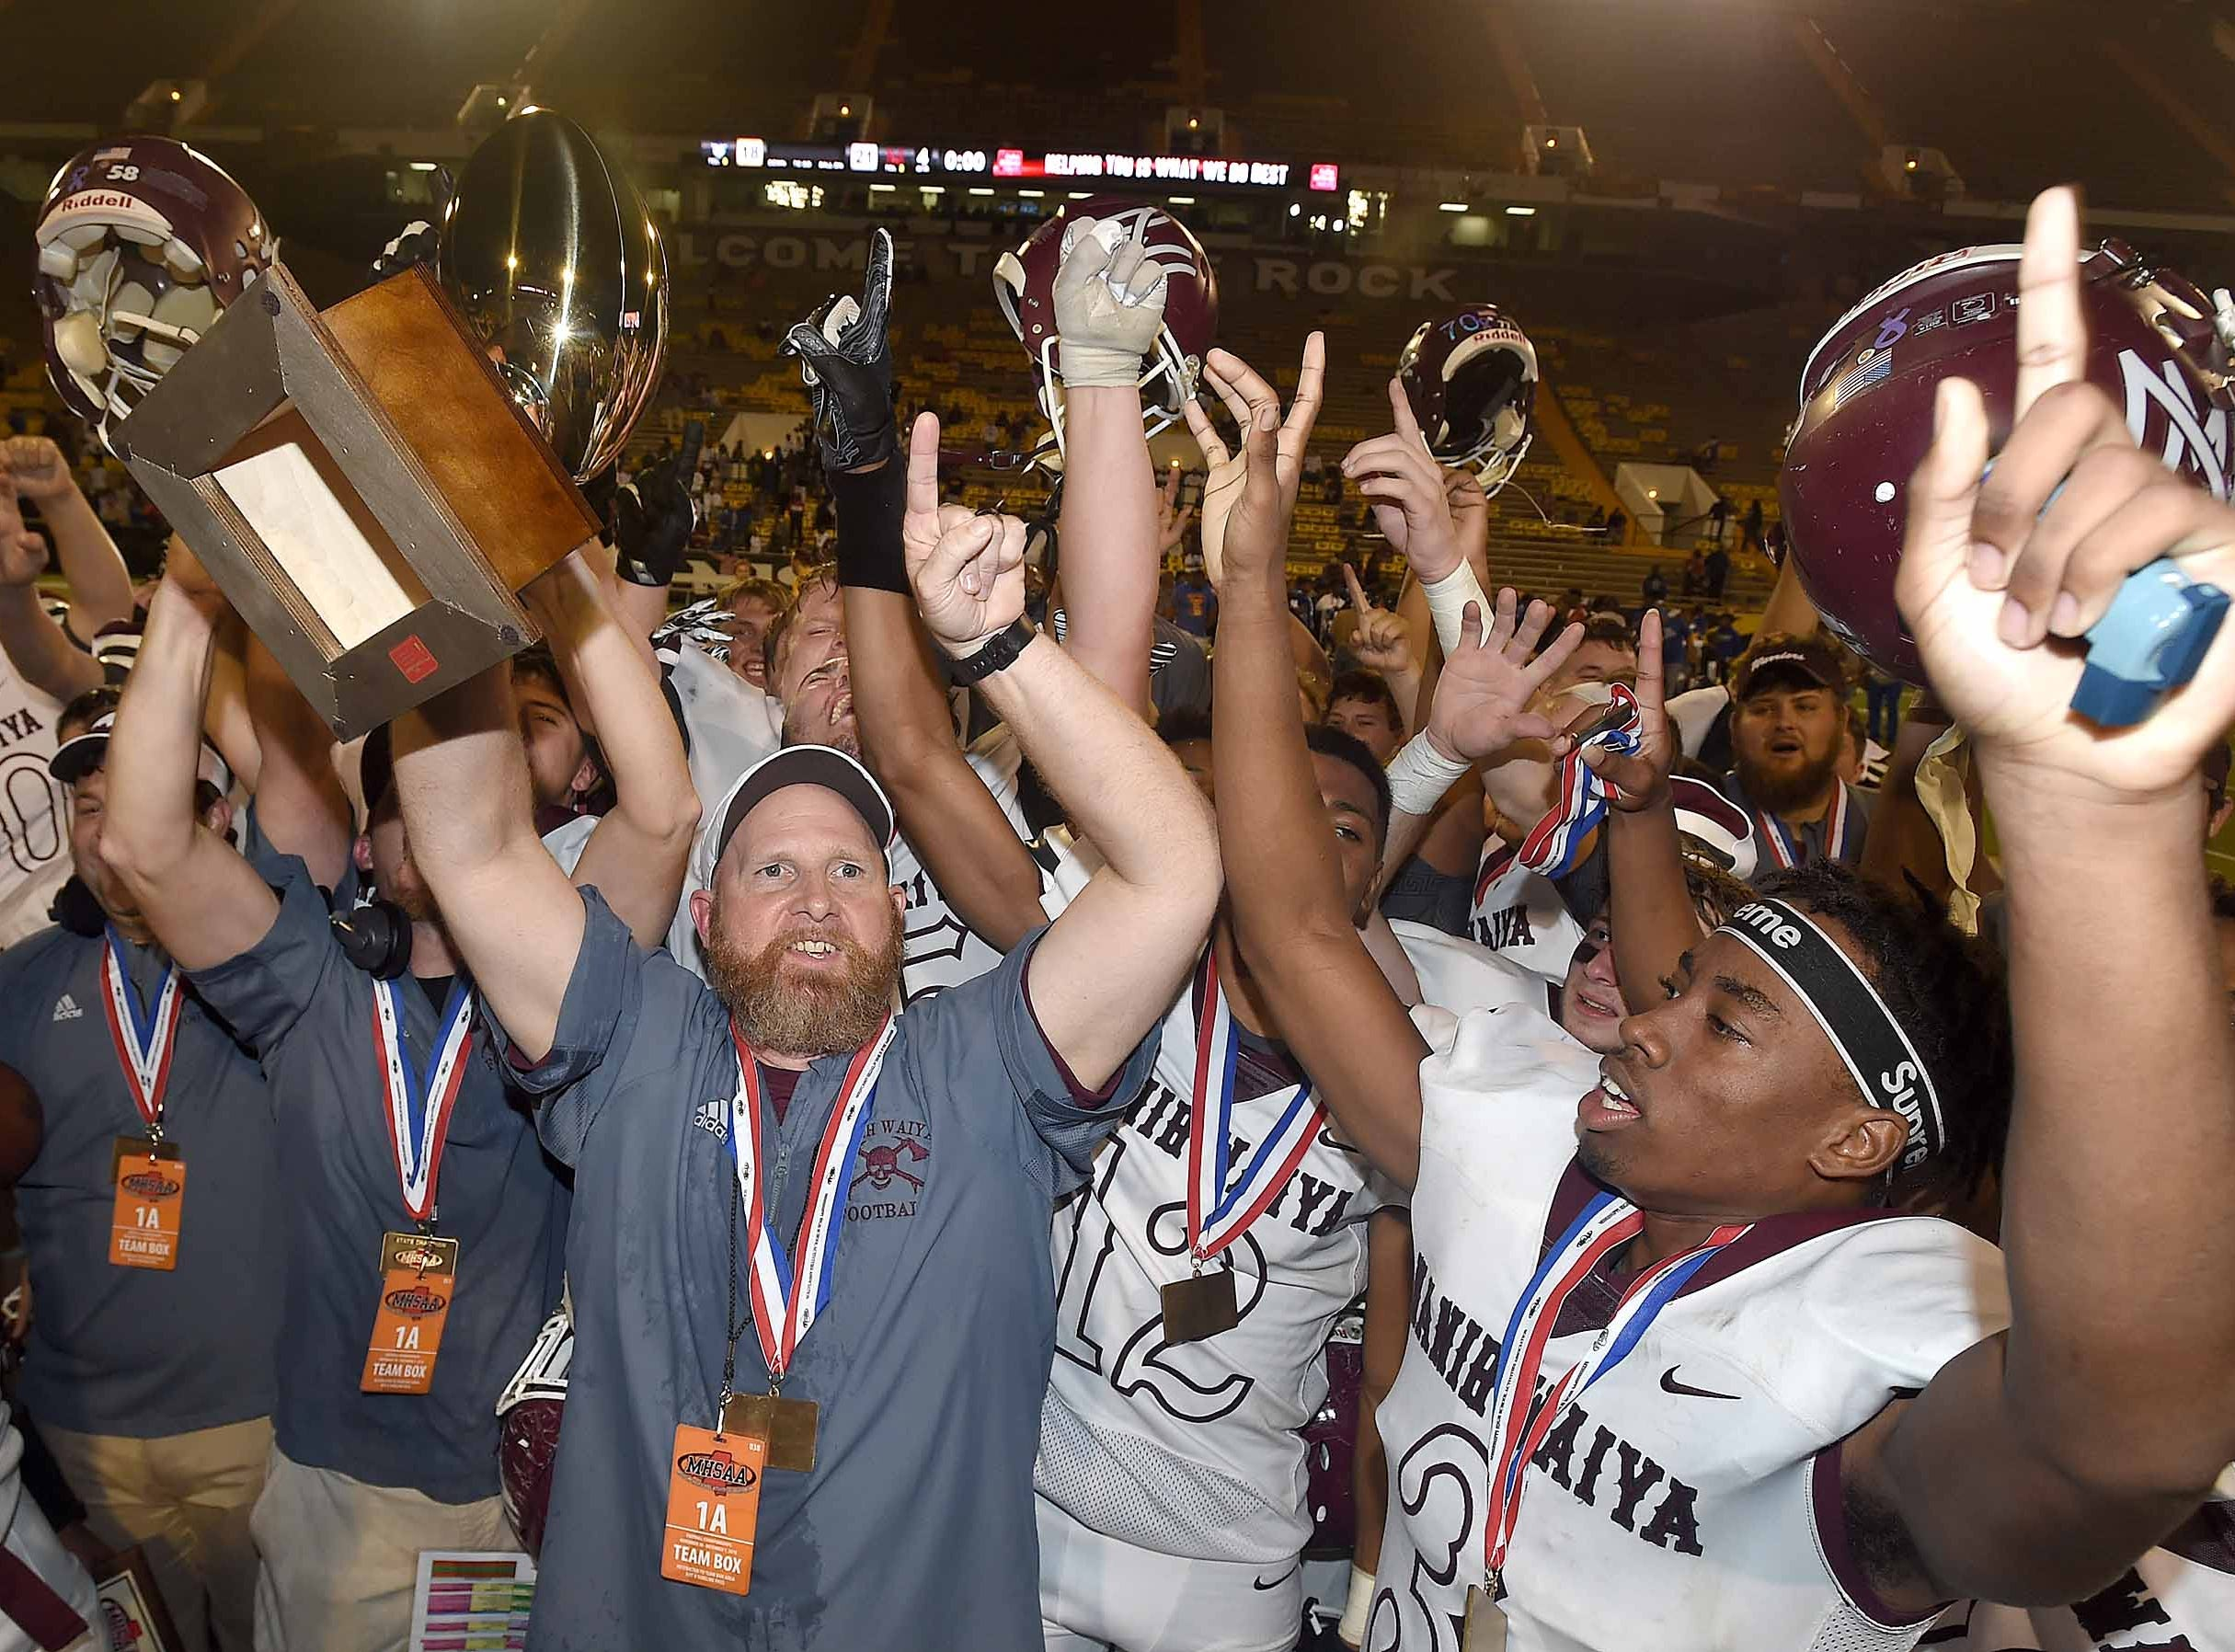 Nanih Waiya ends Simmons' 54-game win streak, takes 1A state title with 21-18 win